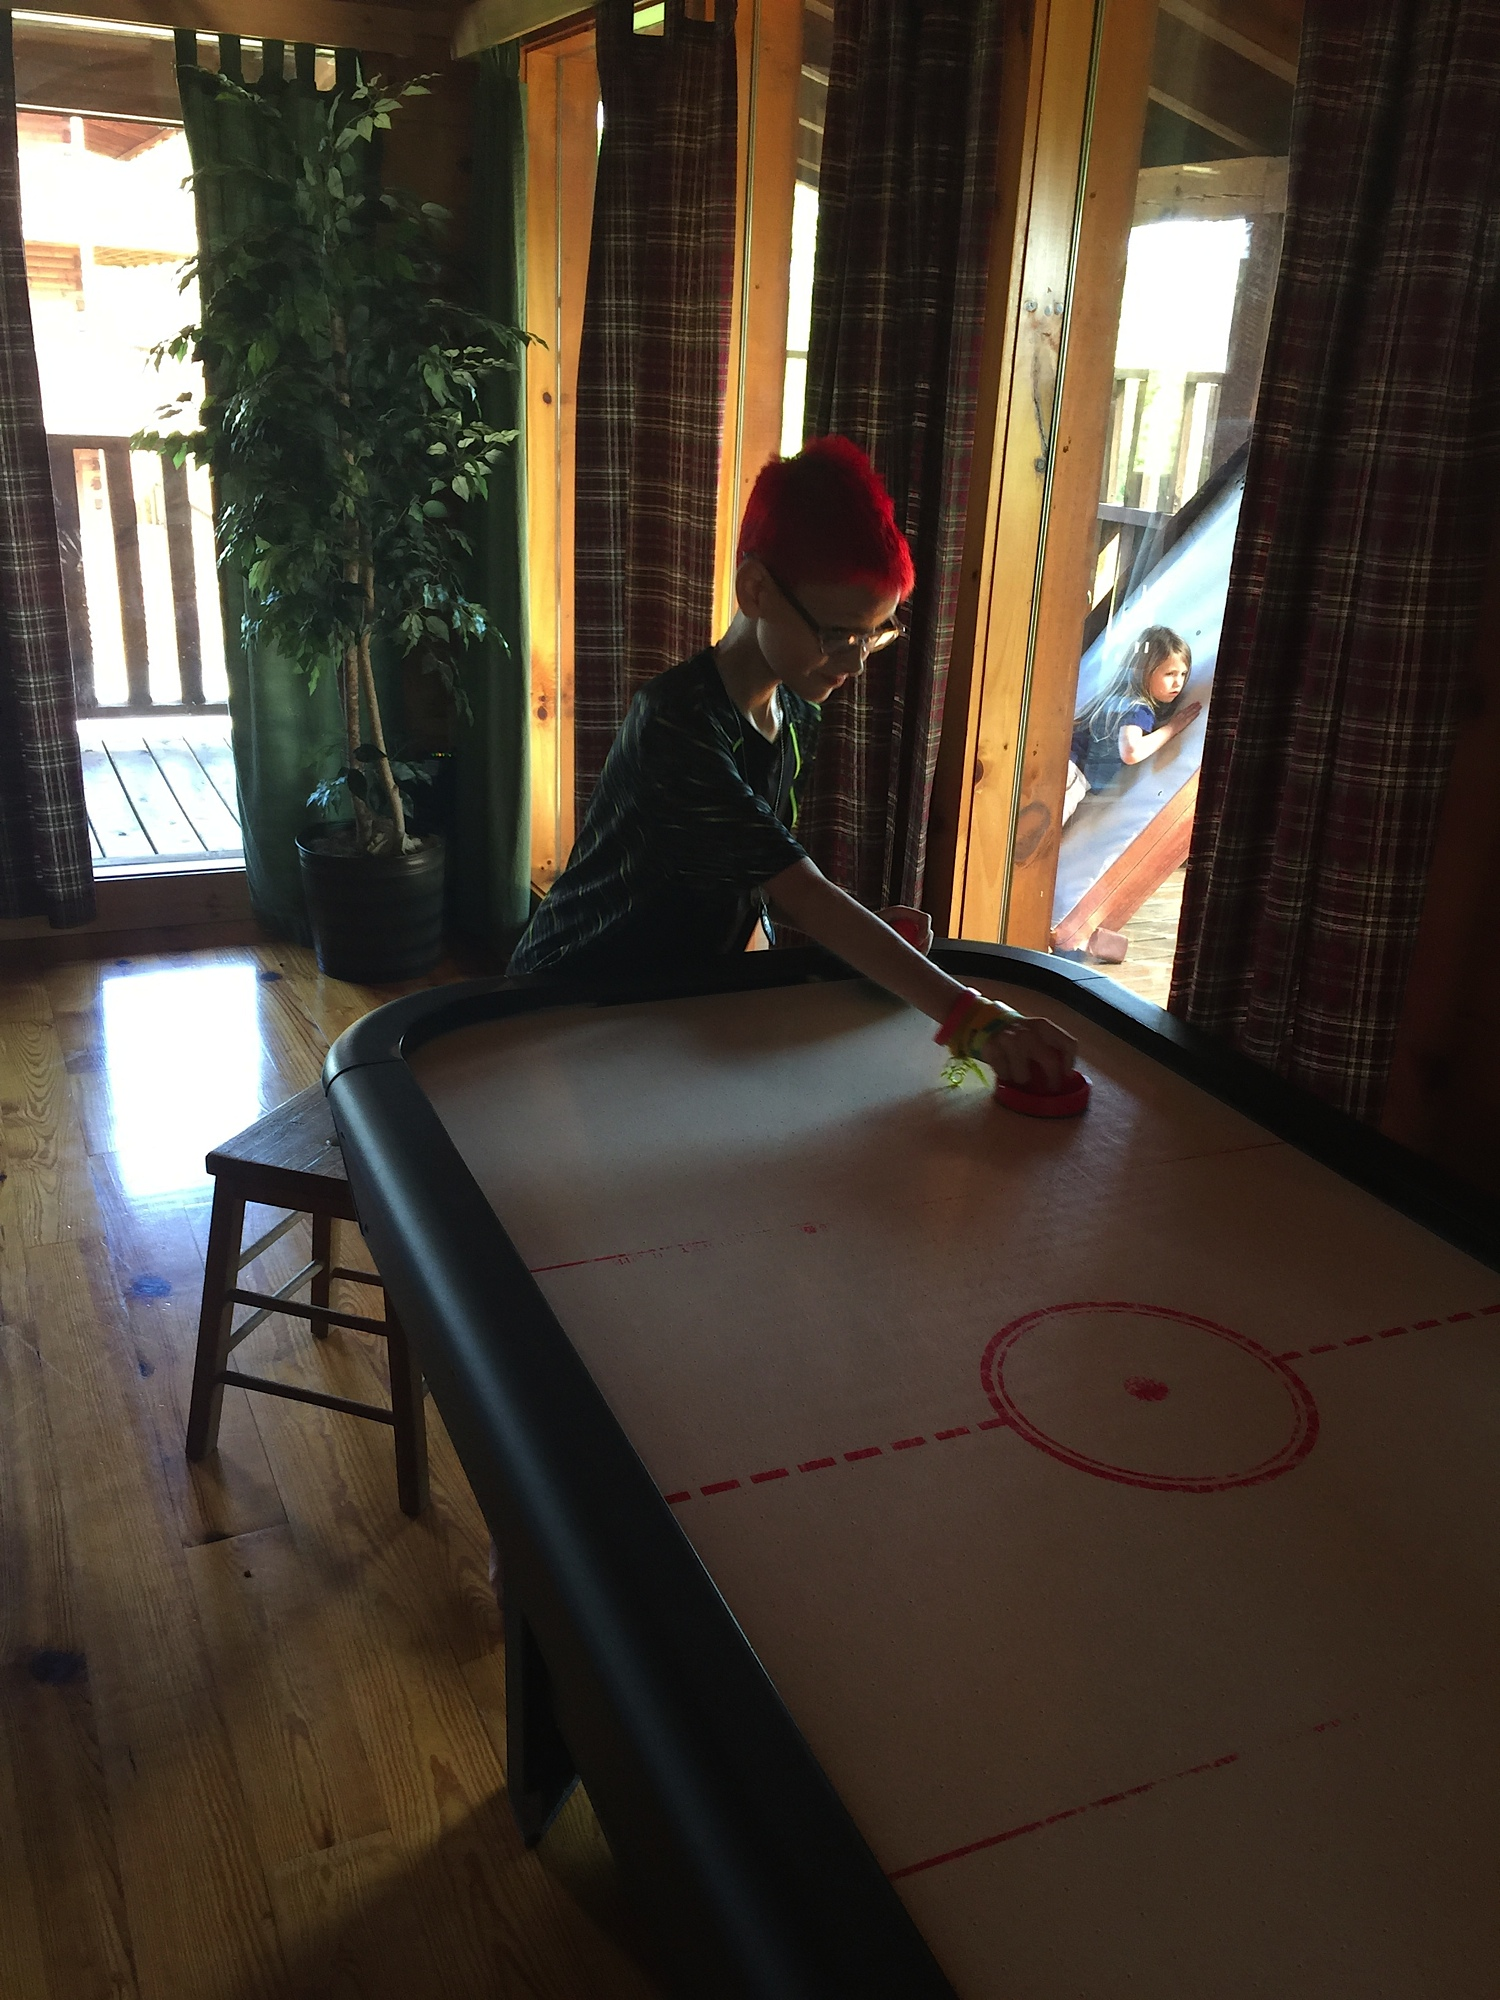 2015 E playing airhockey in mountains.jpeg